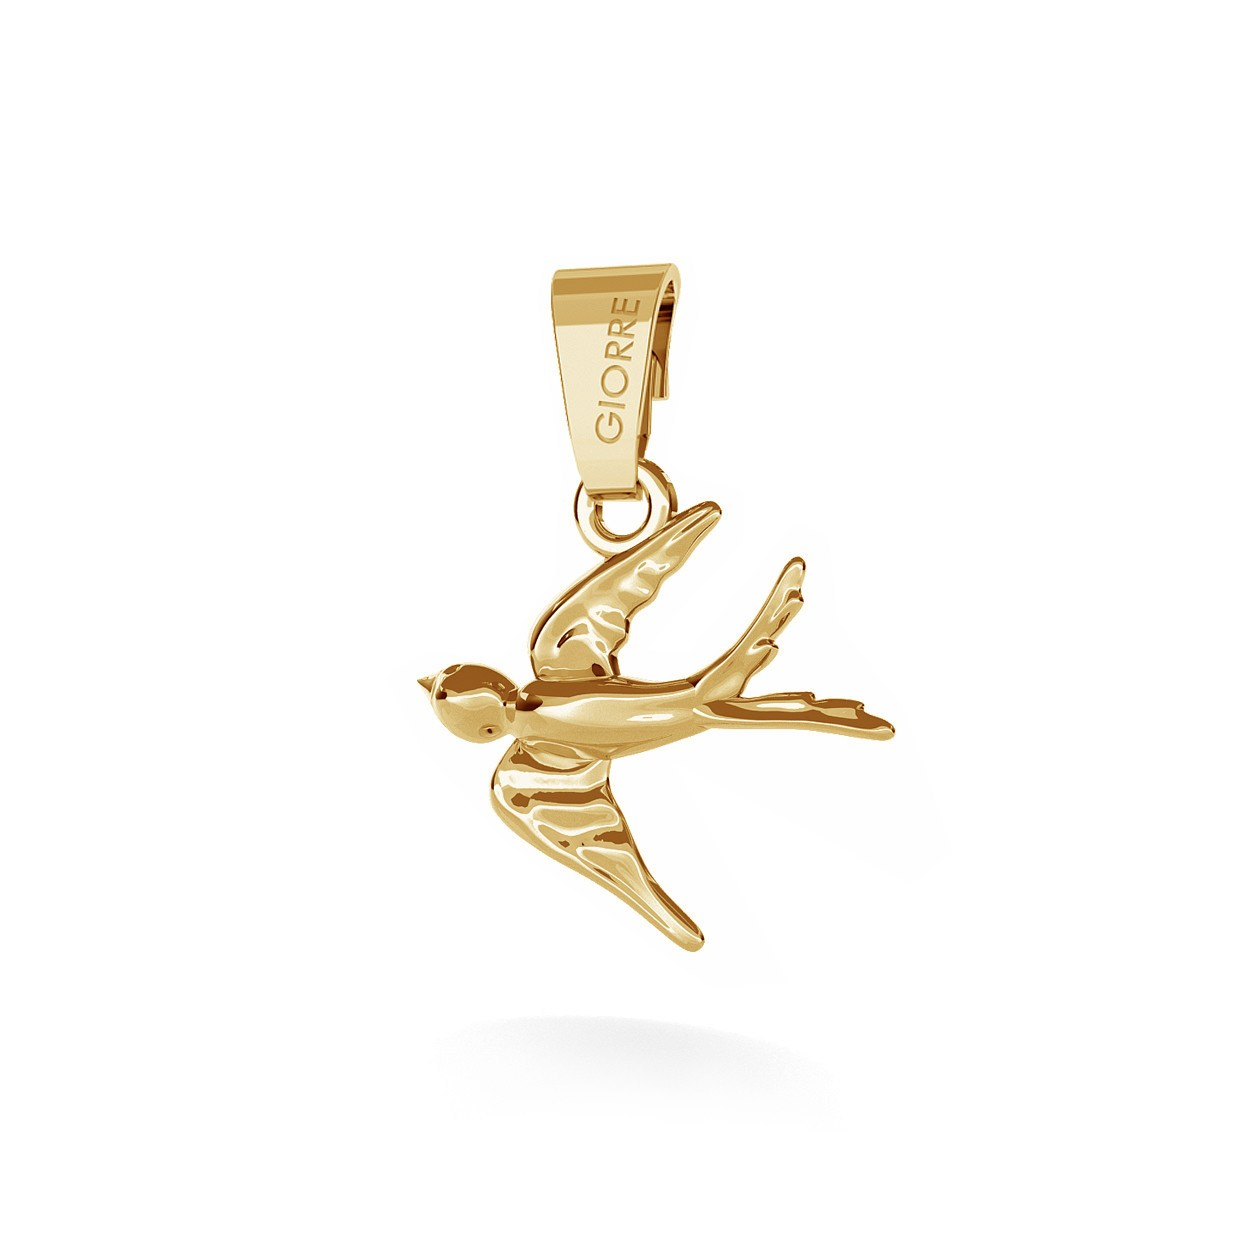 CHARM 41, SWALLOW, SILVER 925, RHODIUM OR GOLD PLATED